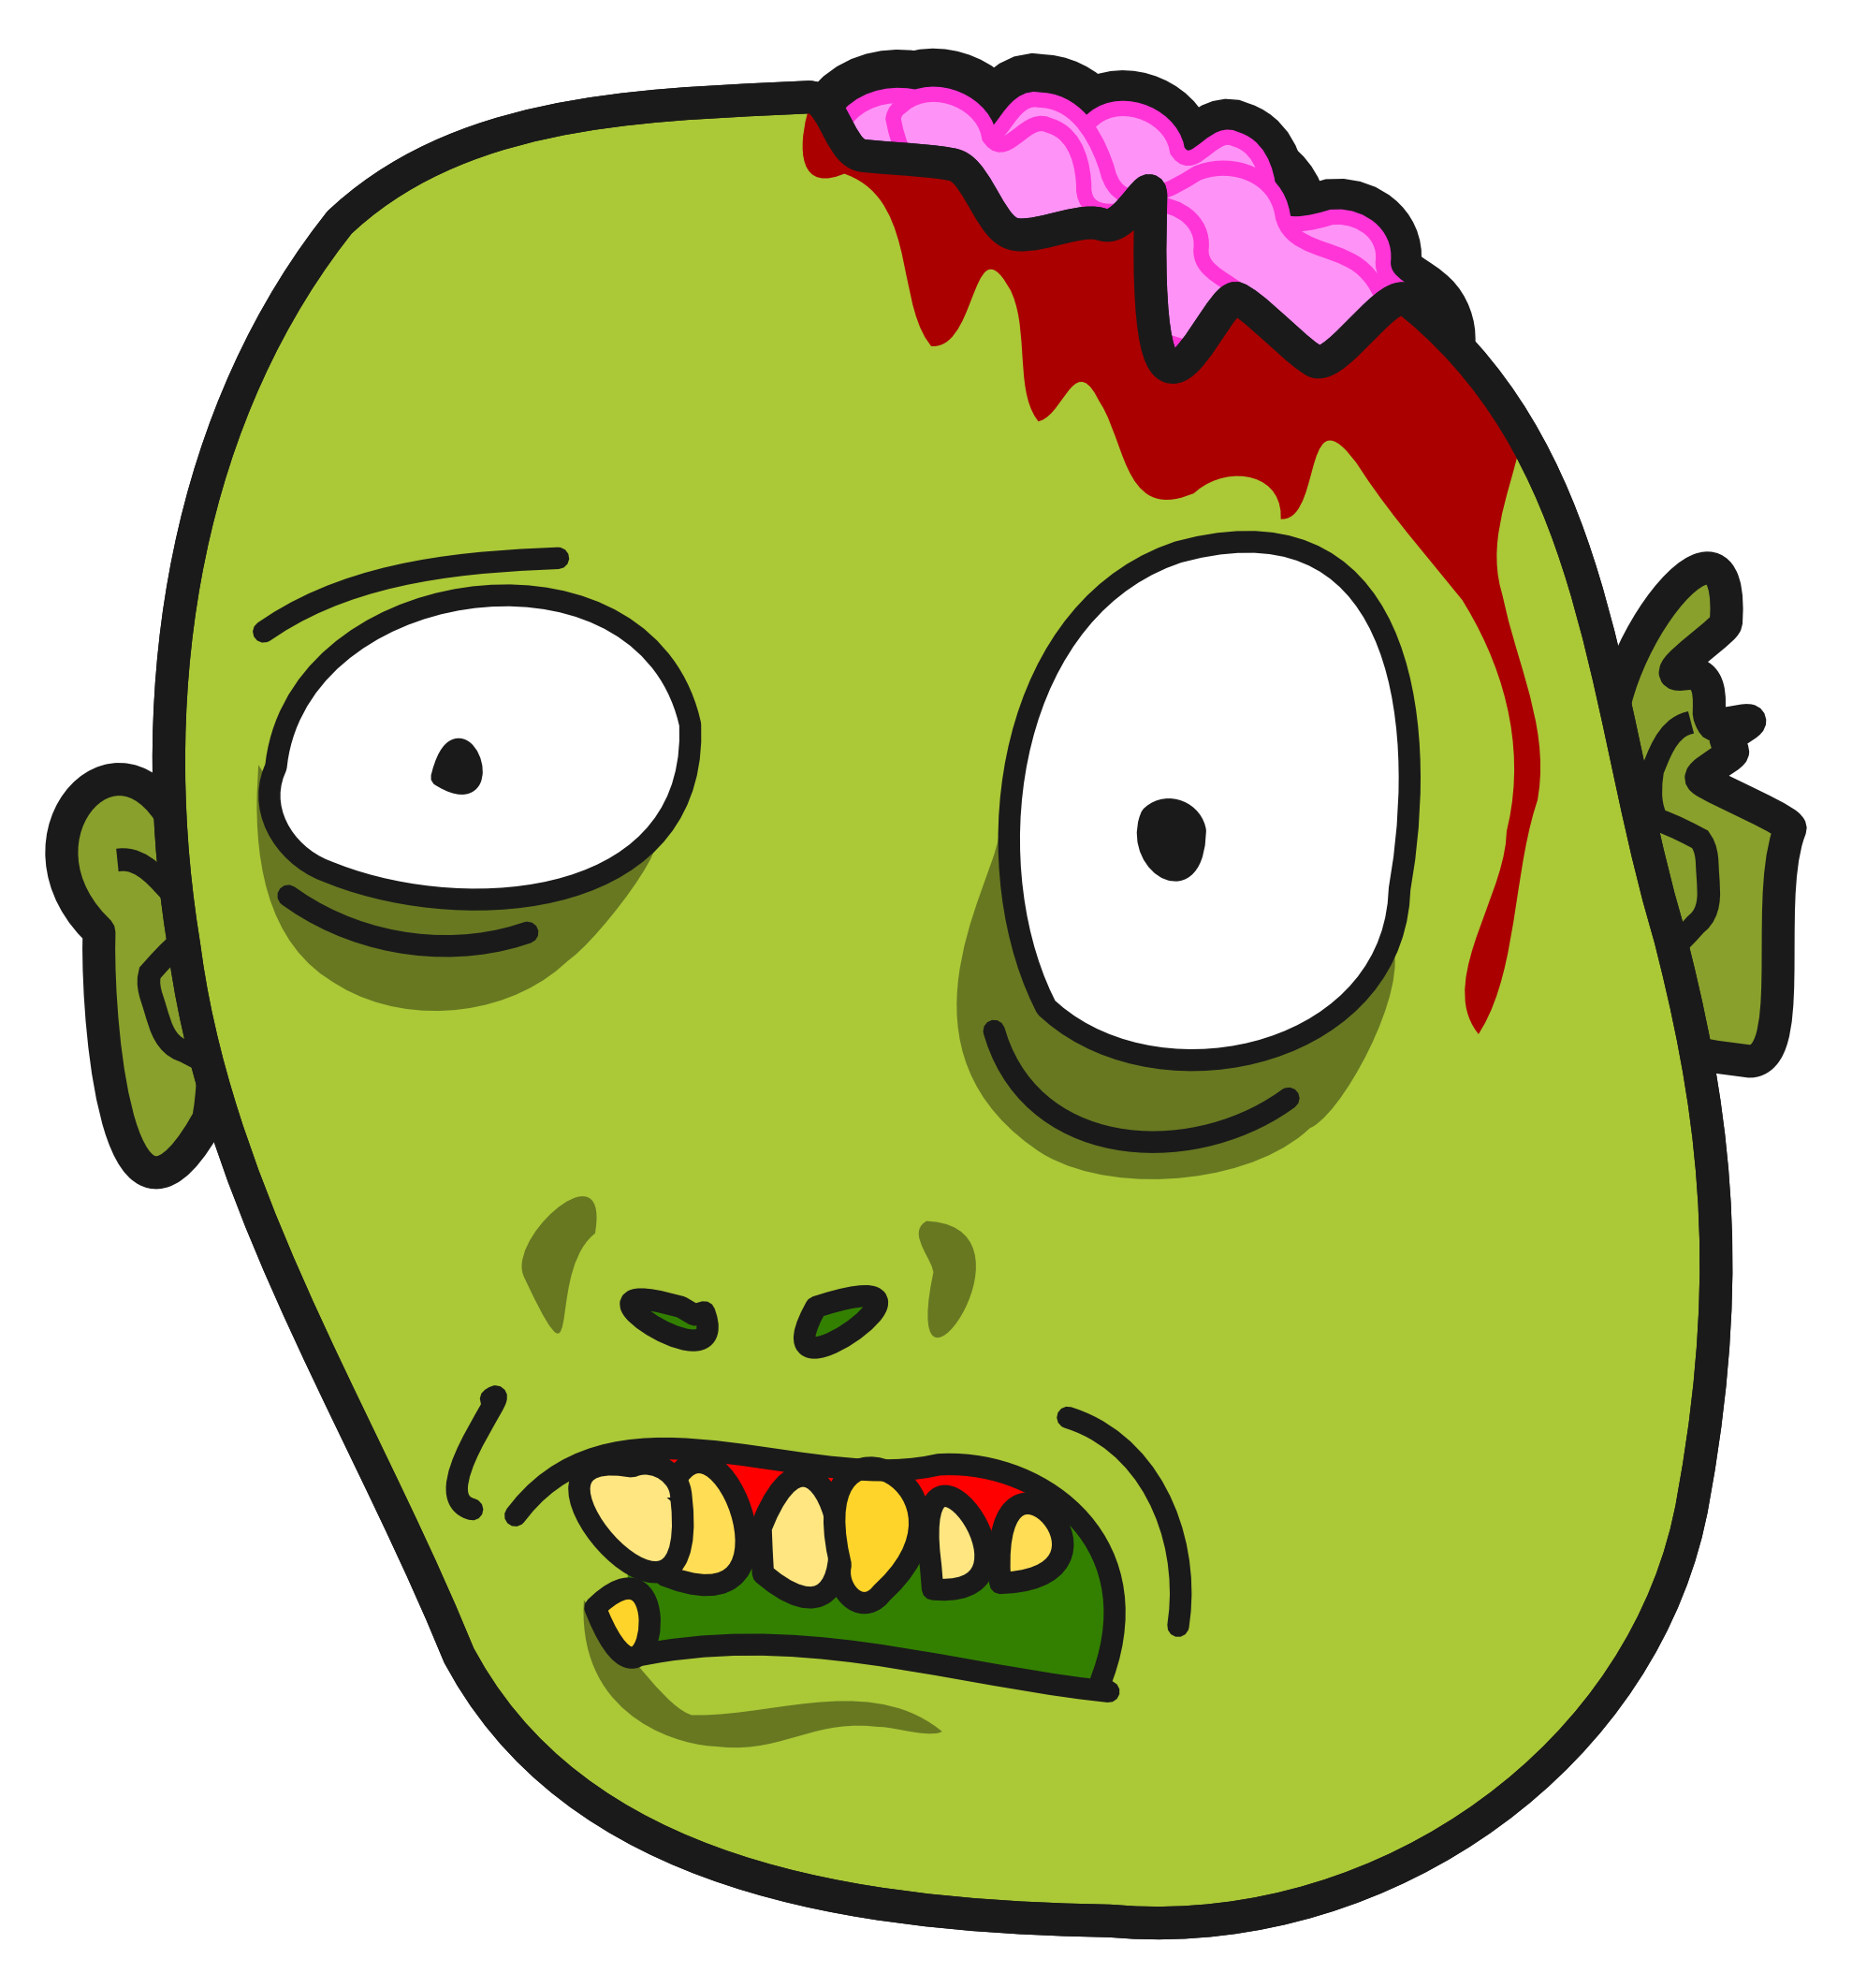 Zombie face clipart.